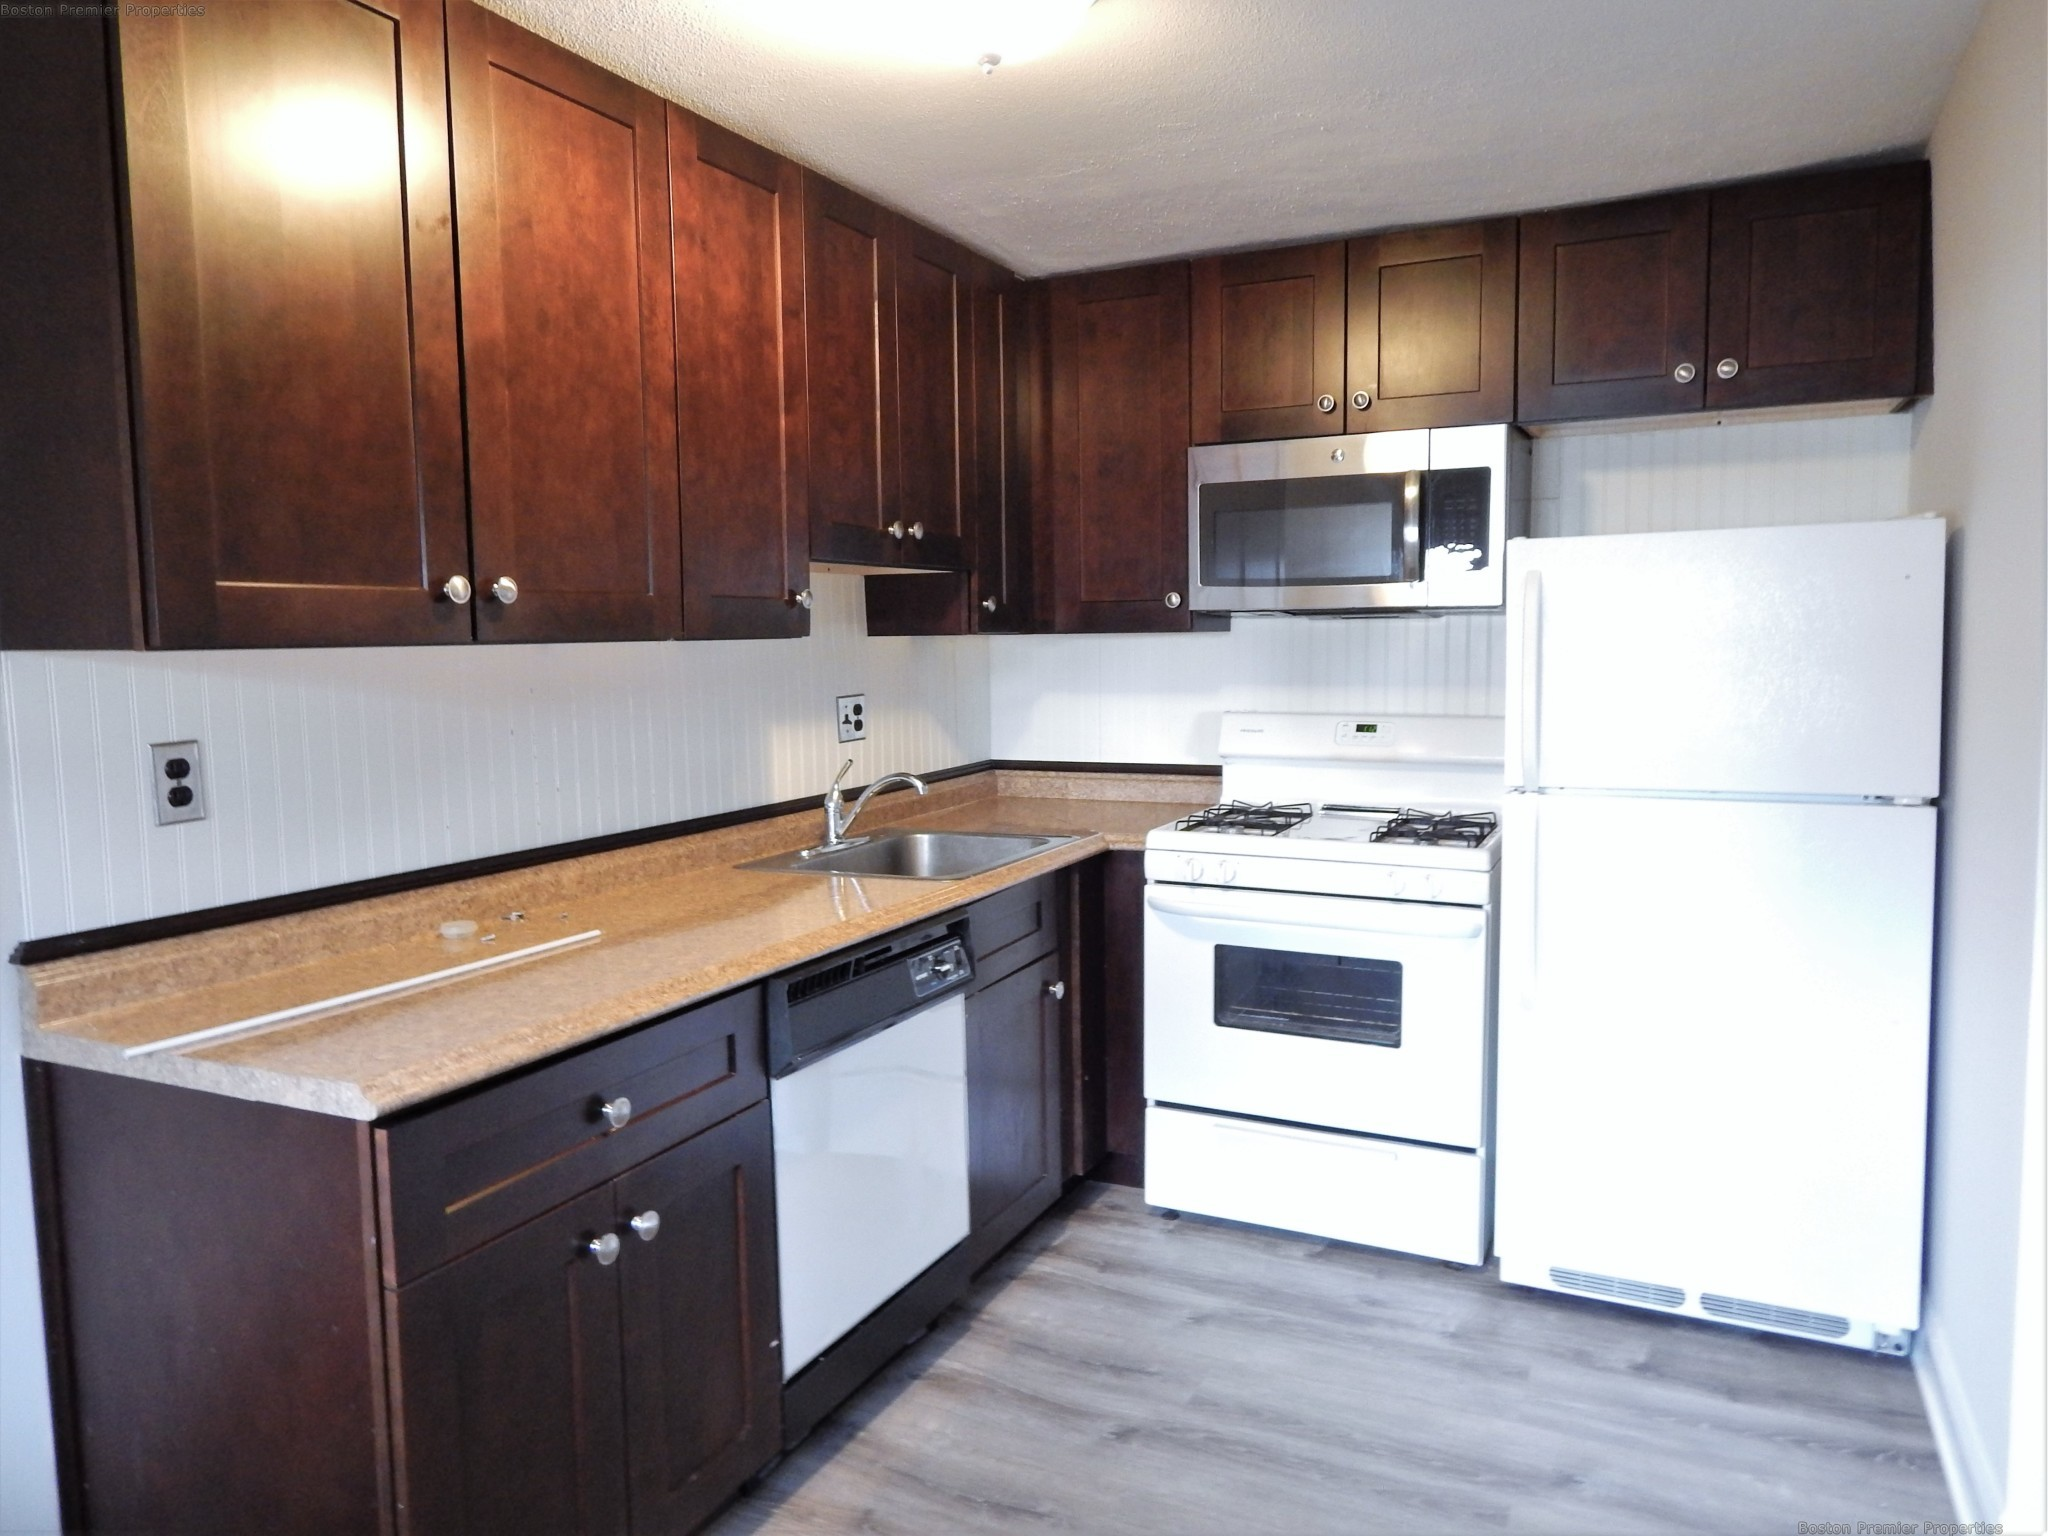 Large 2 bed, 1.5 bath, Heat/Hot water included. Walk to Quincy Center